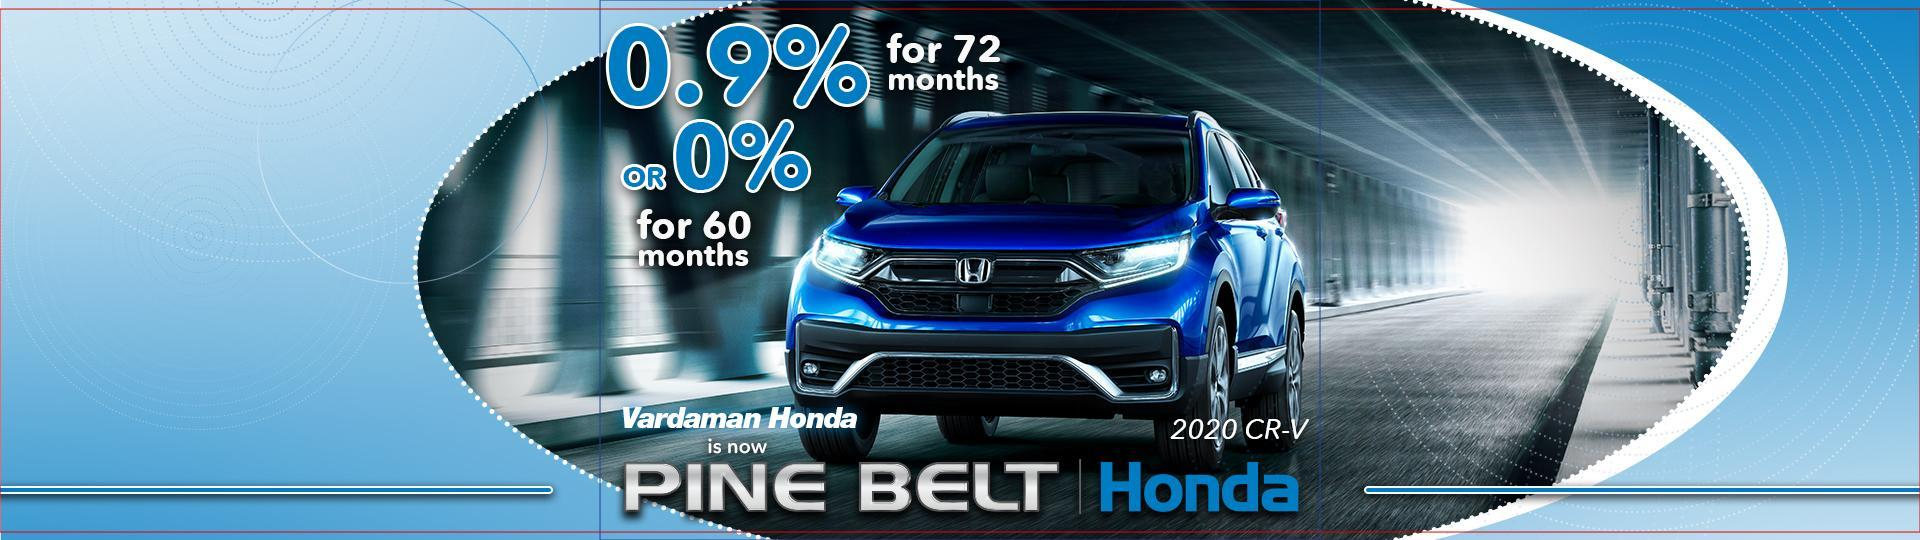 2020 Honda CR-V Finance Offer